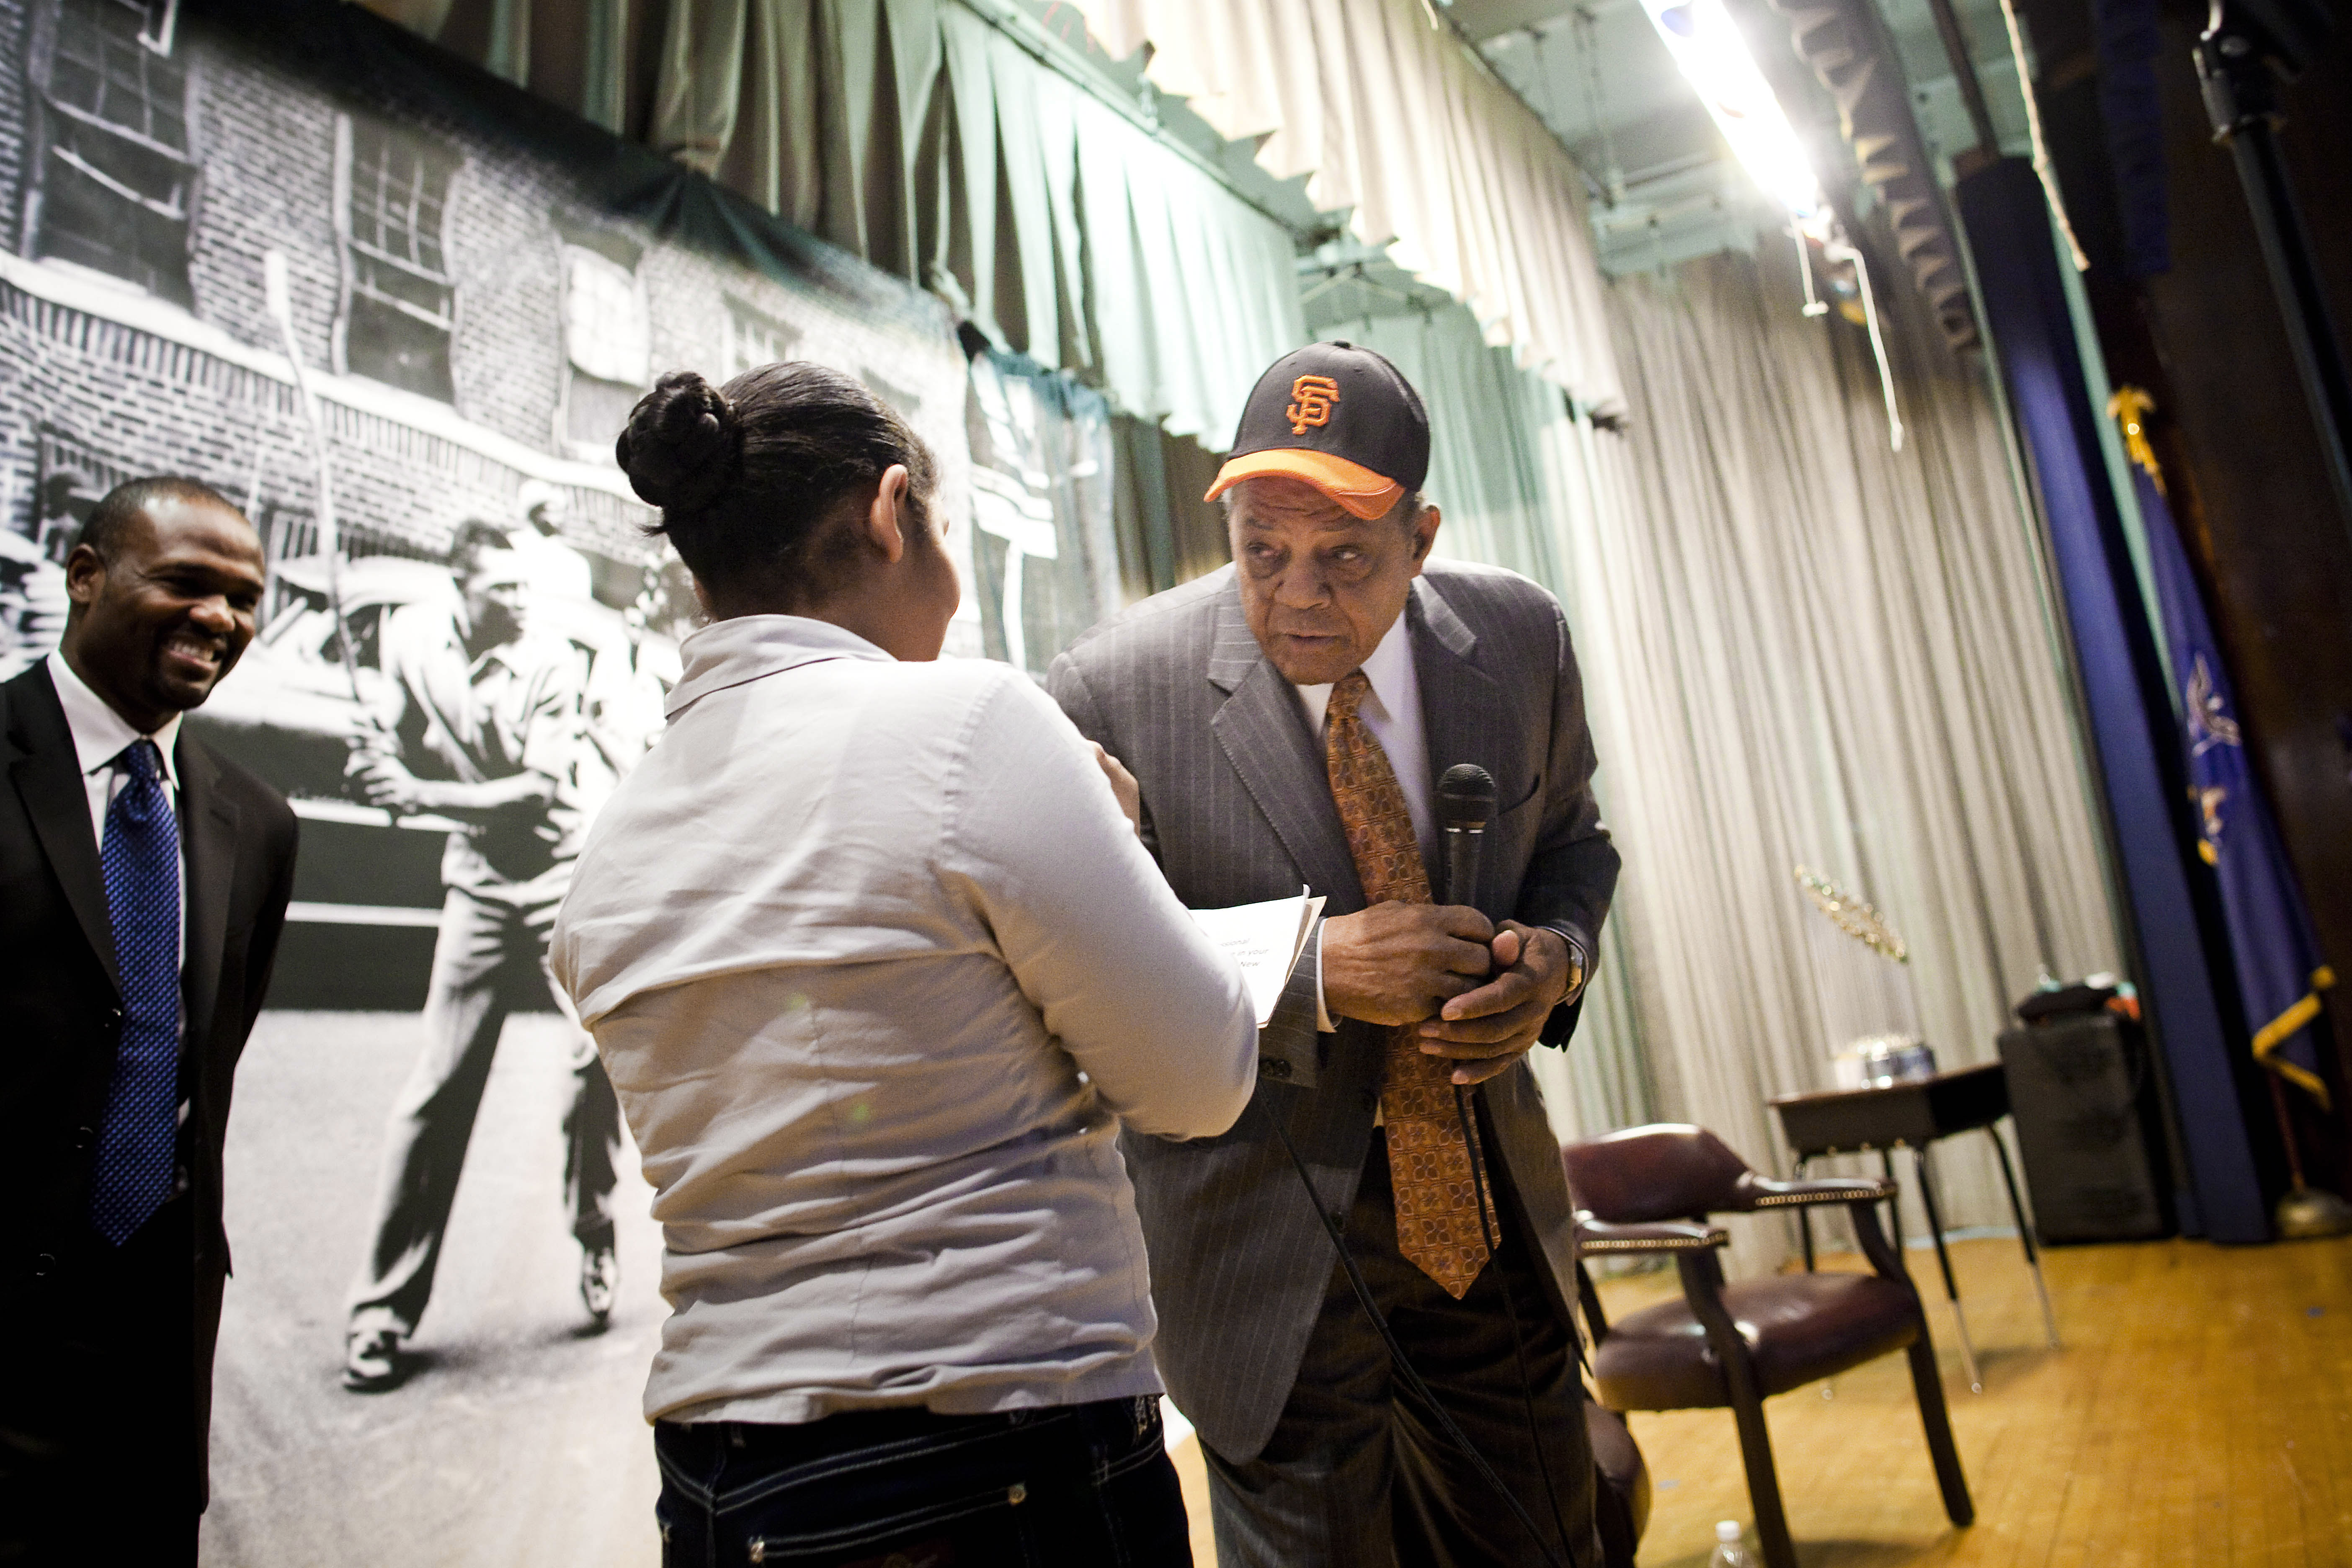 Willie Mays And The World Series Trophy Visit New York City